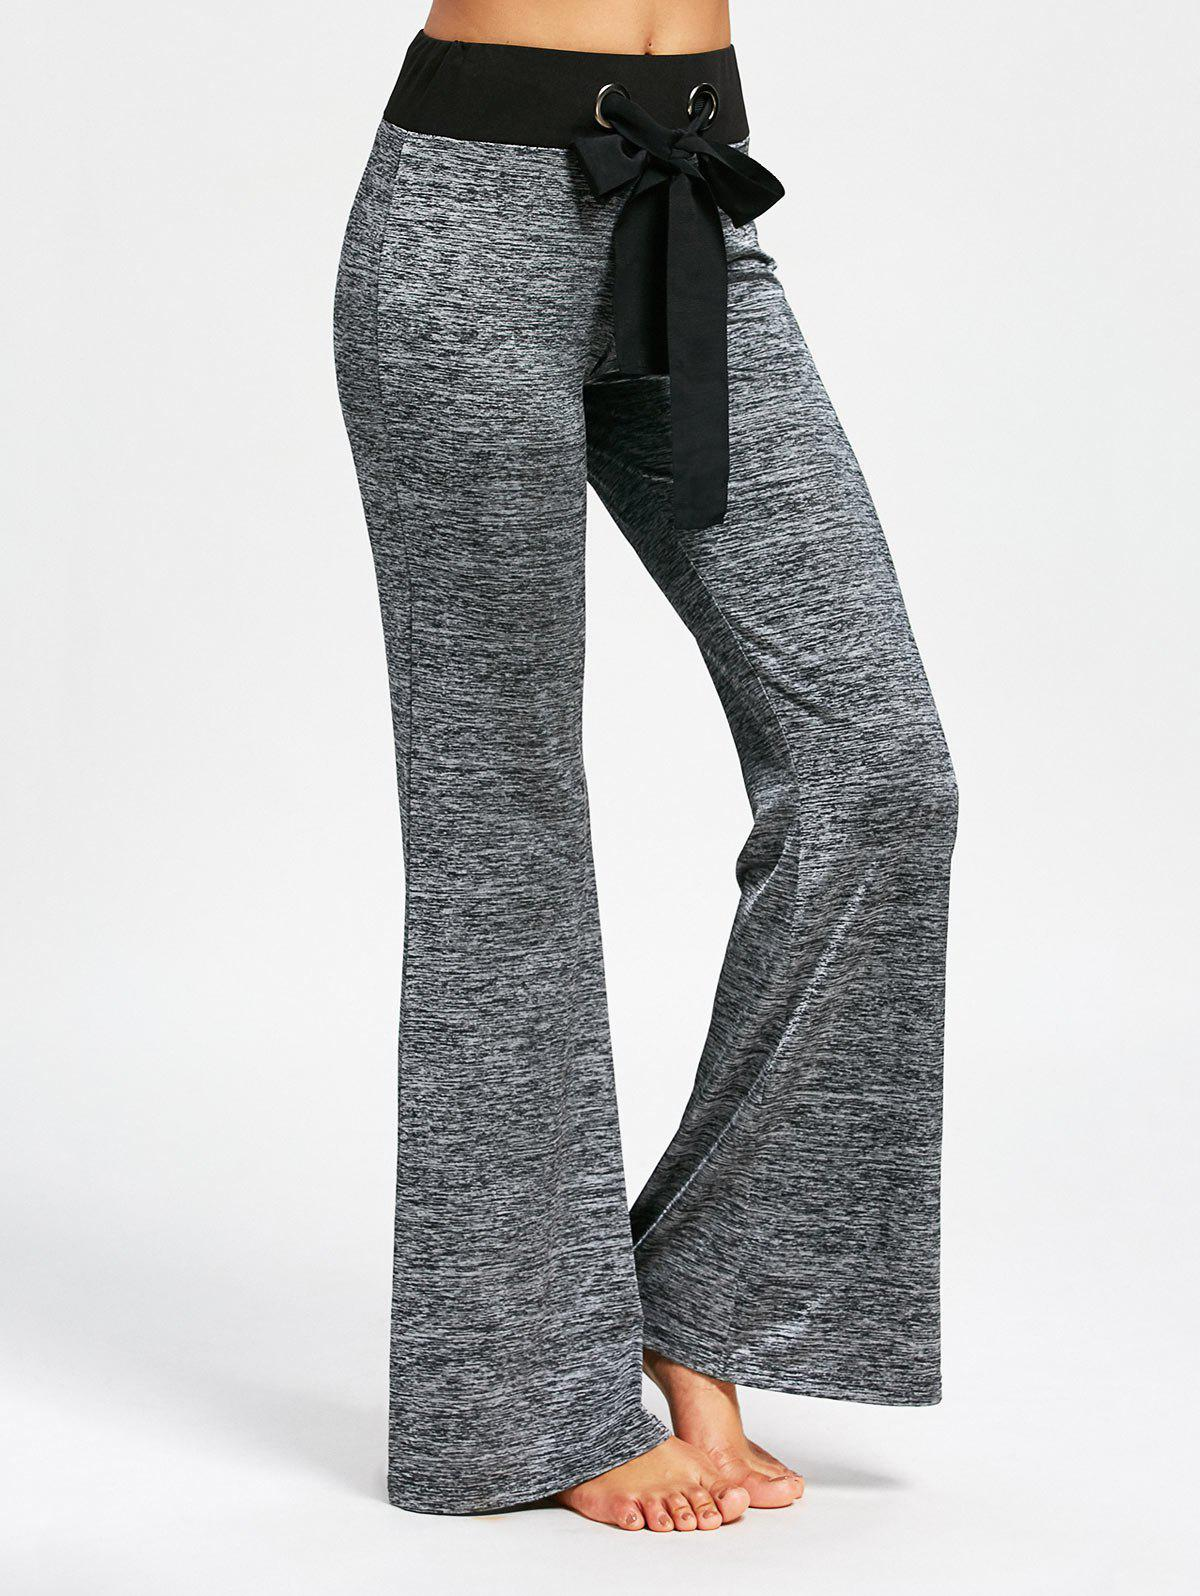 Large Drawstring Casual Pants with Long TailWOMEN<br><br>Size: L; Color: SMOKY GRAY; Style: Casual; Length: Normal; Material: Polyester,Spandex; Fit Type: Regular; Waist Type: Mid; Closure Type: Elastic Waist; Front Style: Flat; Pattern Type: Solid; Embellishment: Bowknot; Pant Style: Straight; Elasticity: Elastic; With Belt: No; Weight: 0.3600kg; Package Contents: 1 x Pants;